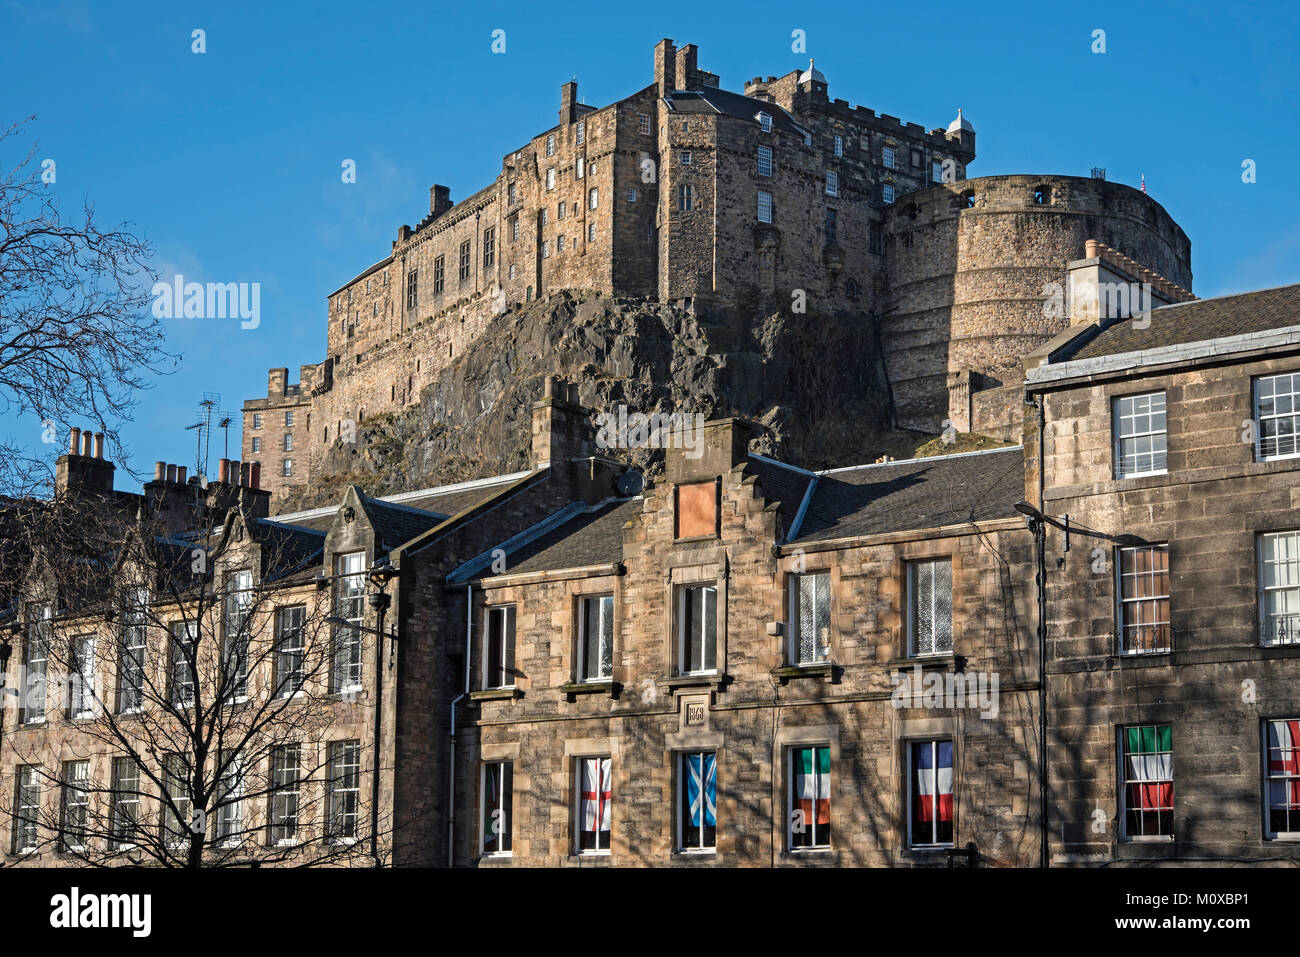 Edinburgh Castle seen from the Grassmarket in the Old Town. - Stock Image